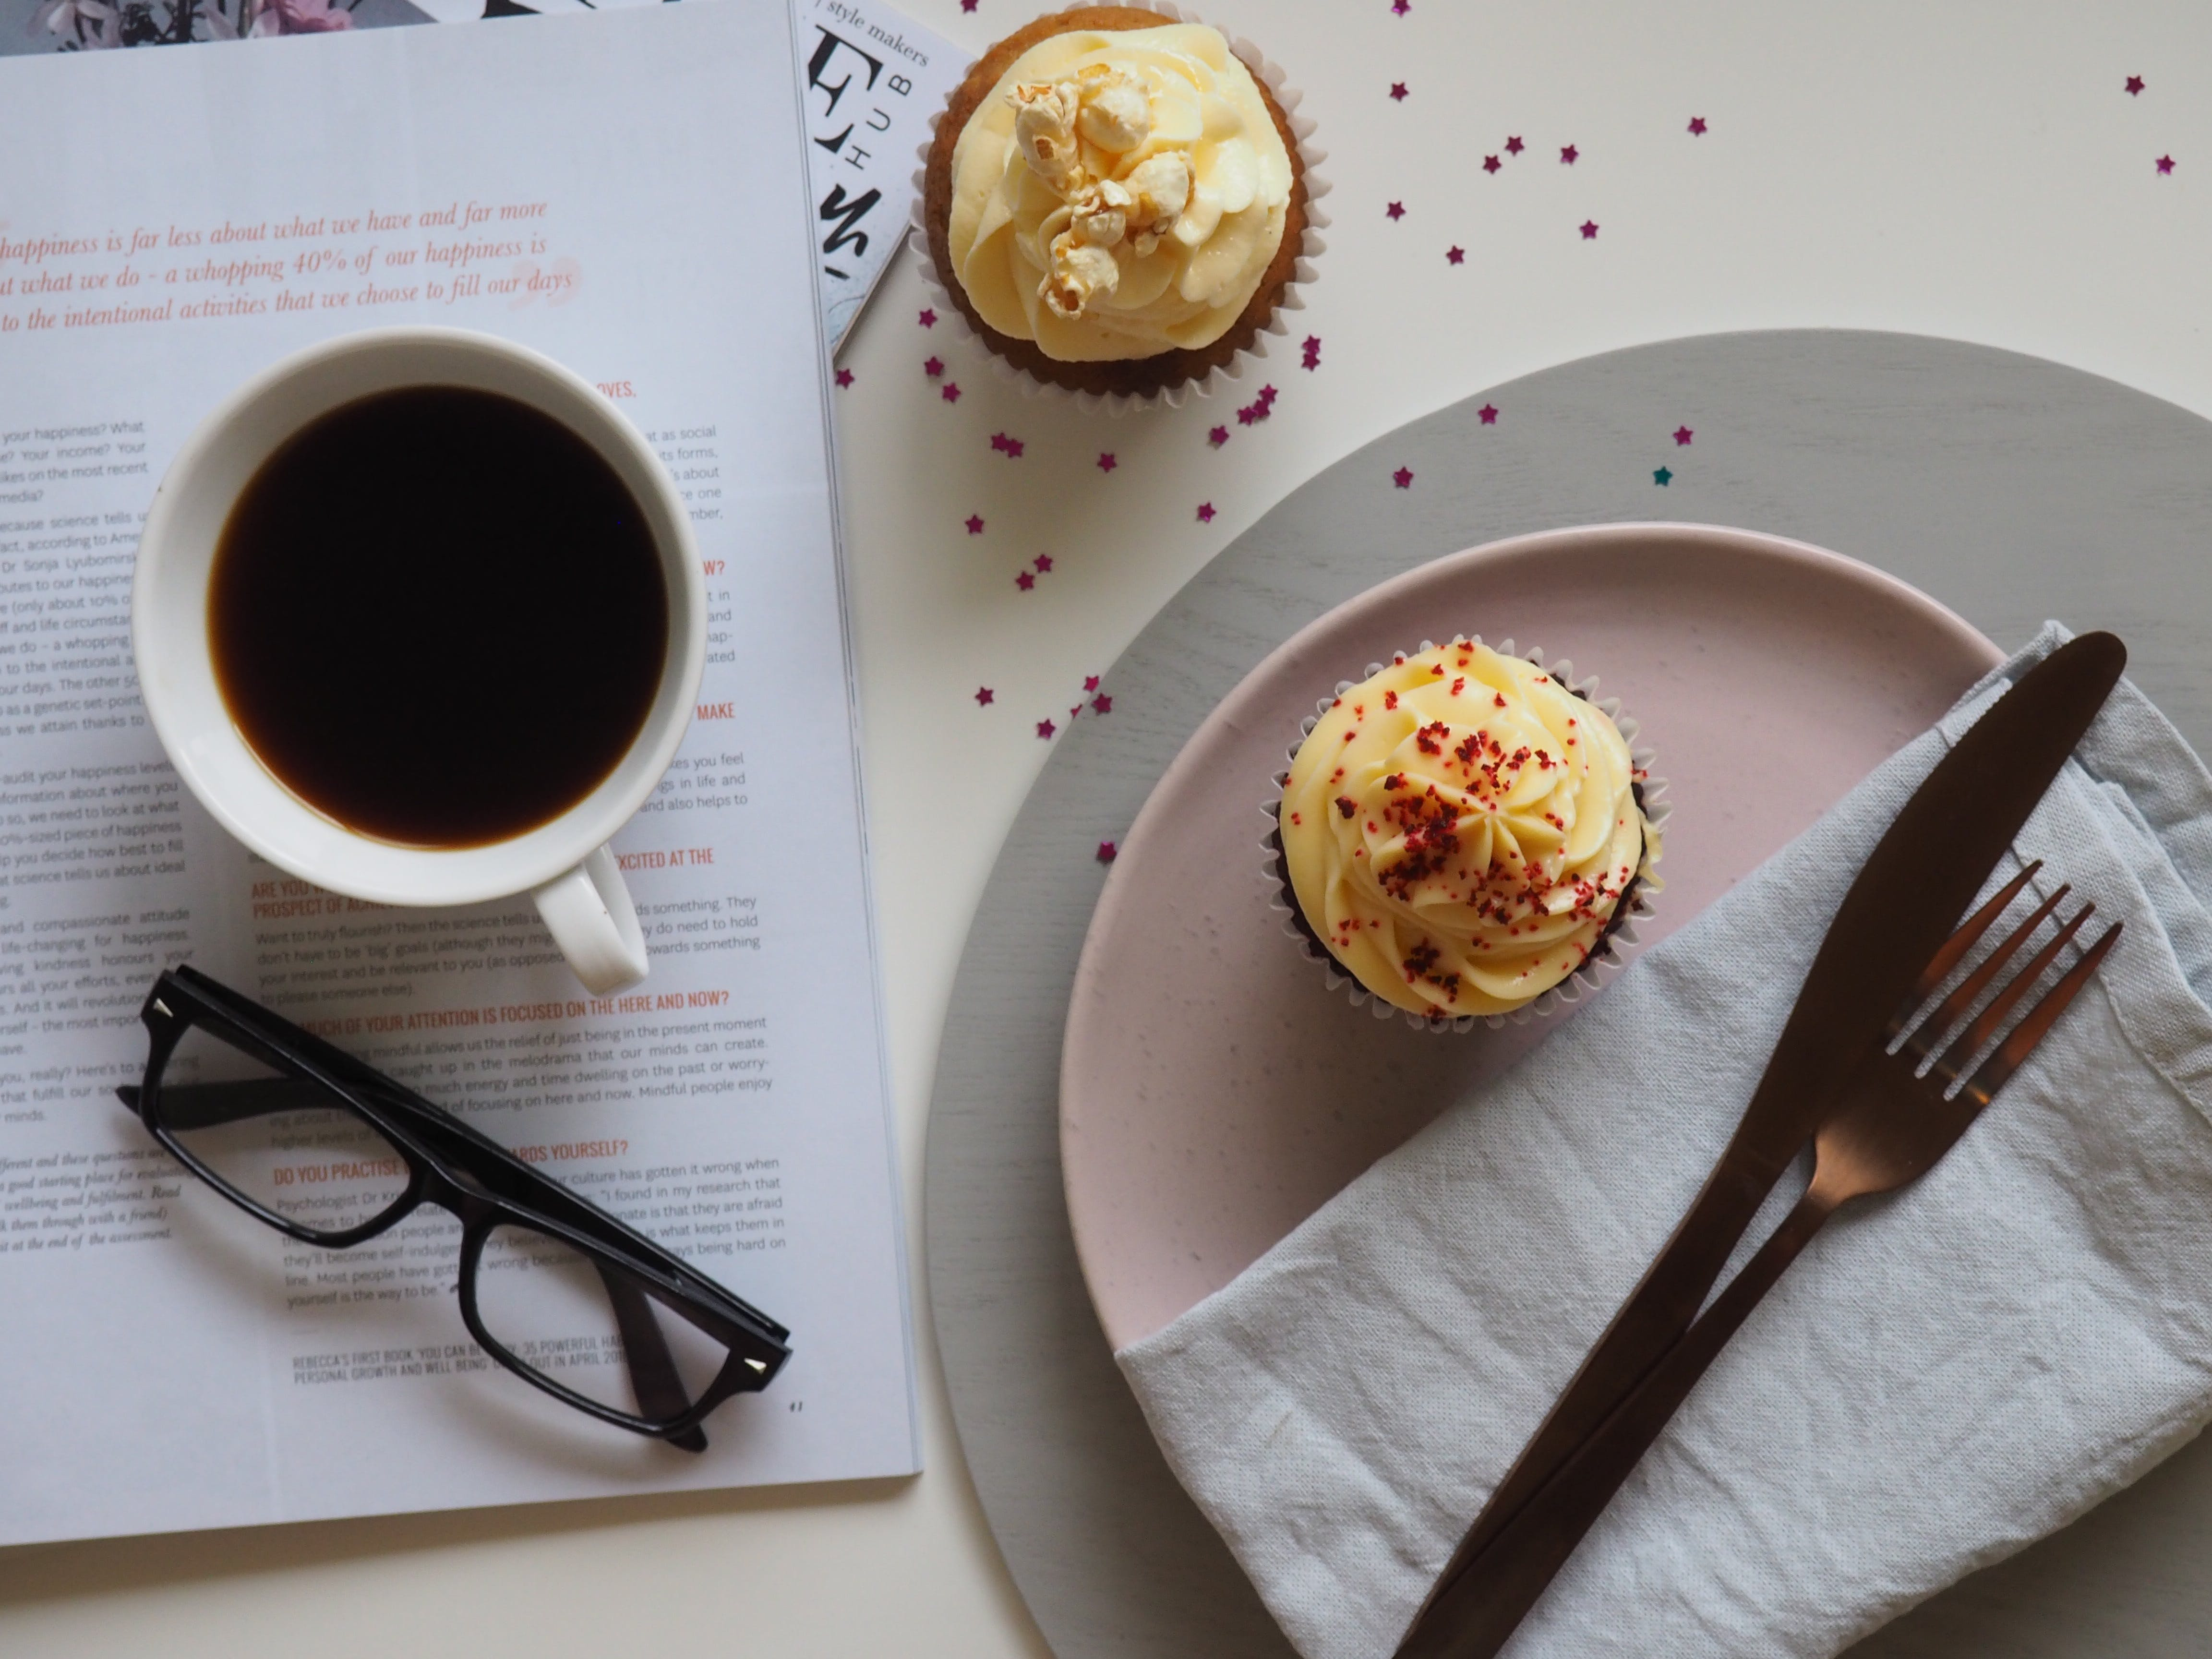 Top-view Photograph of Two Cupcakes, Cup, and Eyeglasses